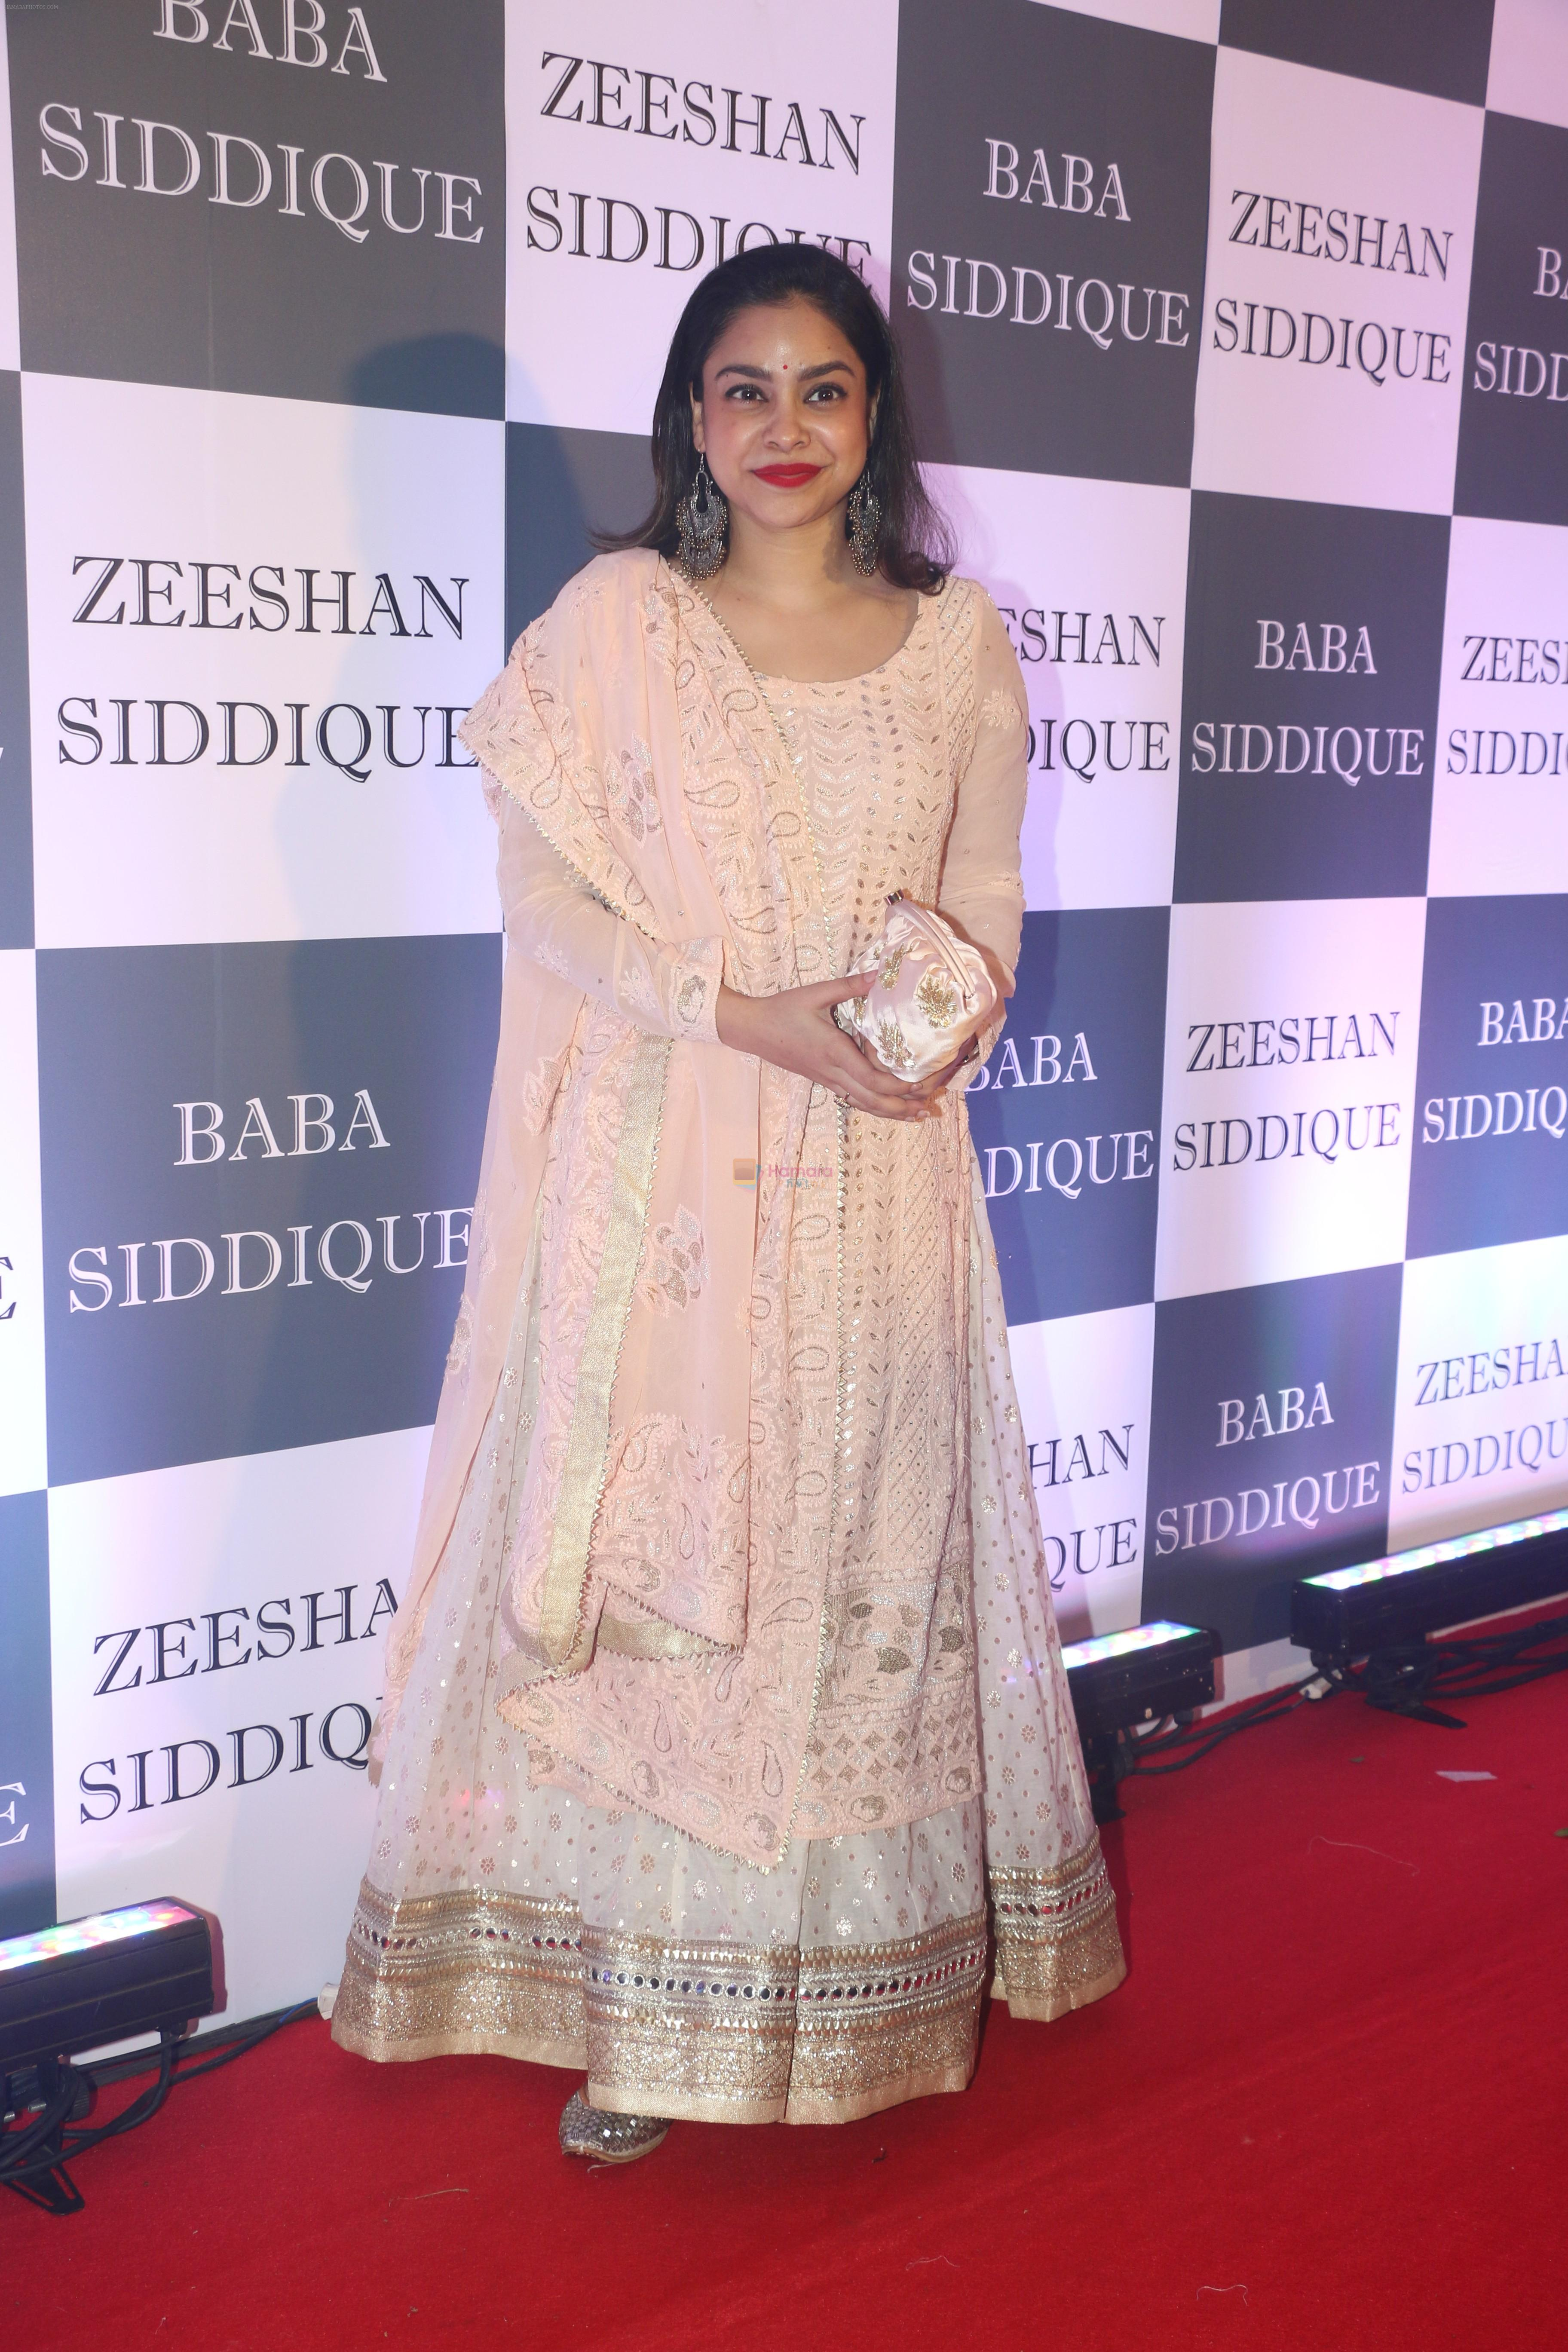 Sumona Chakravarti at Baba Siddiqui iftaar party in Taj Lands End bandra on 2nd June 2019